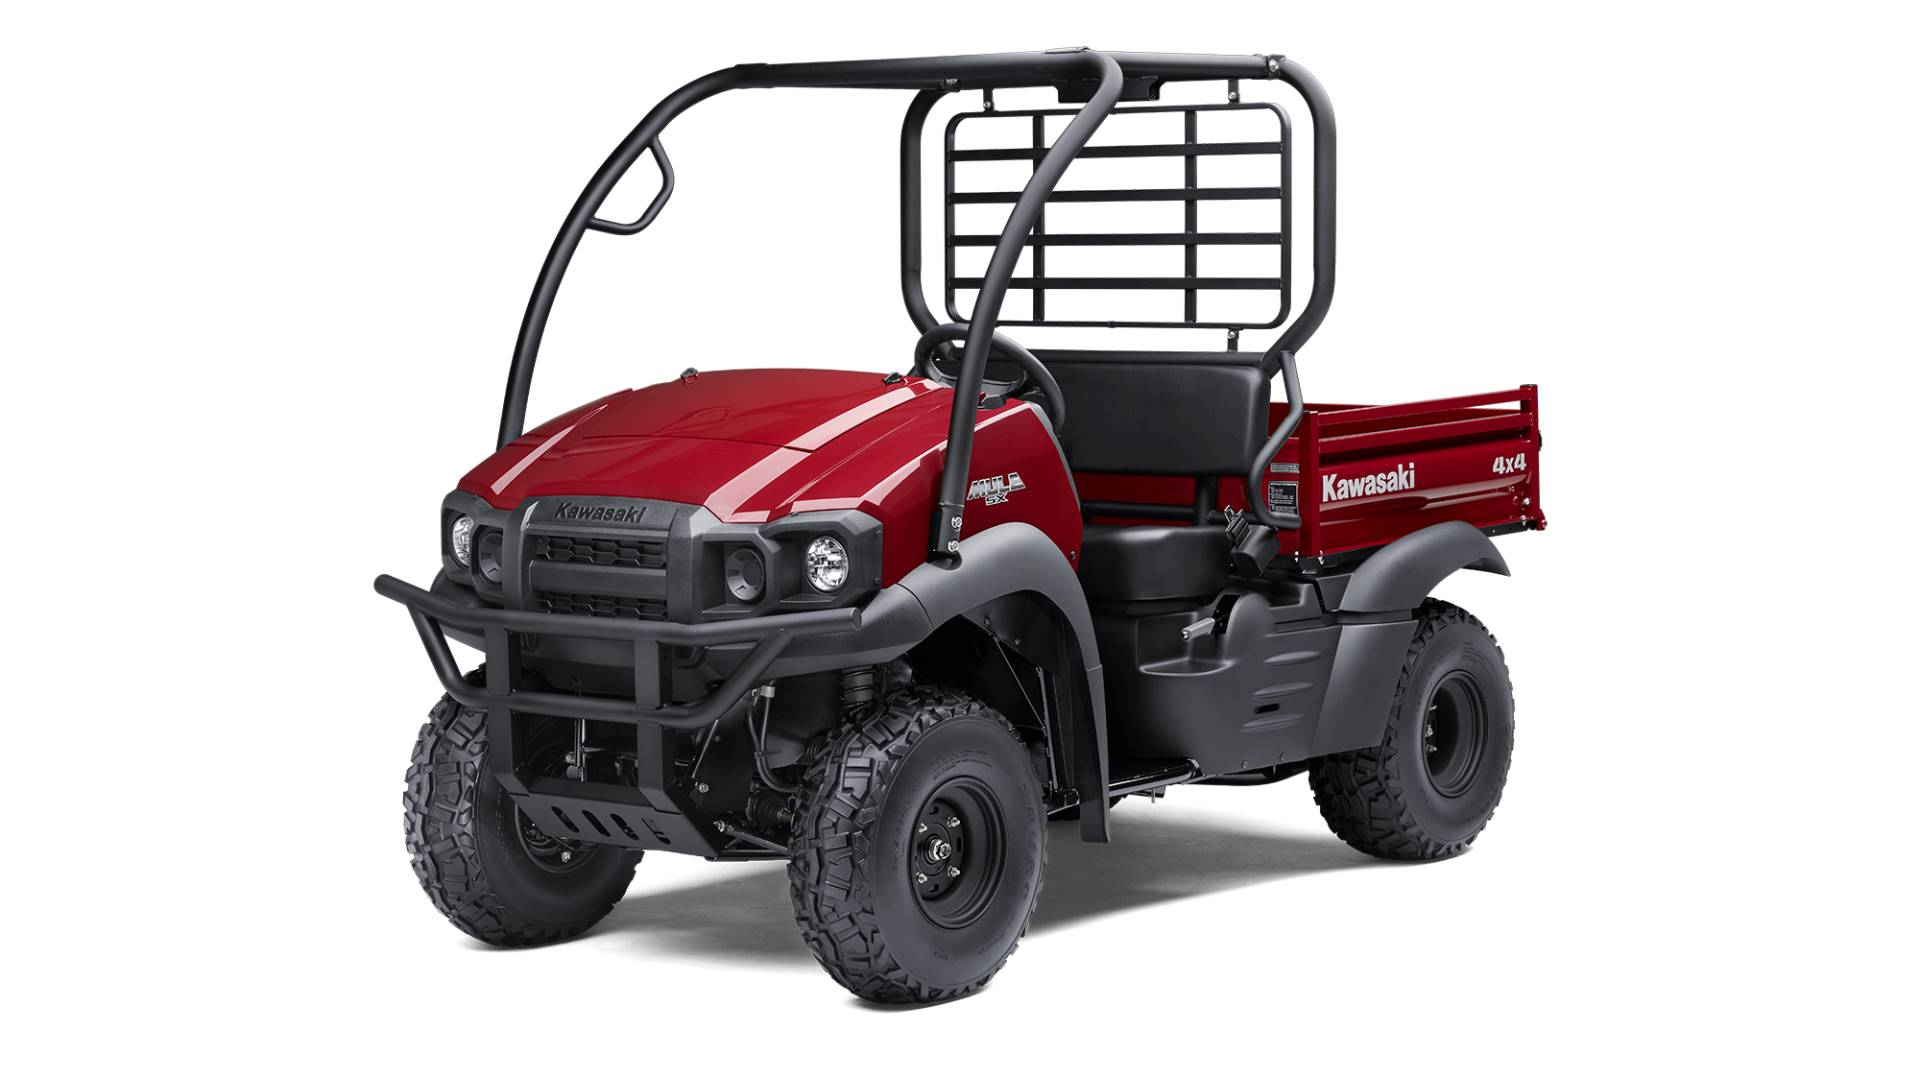 2019 Kawasaki MULE SX 4X4 in Yakima, Washington